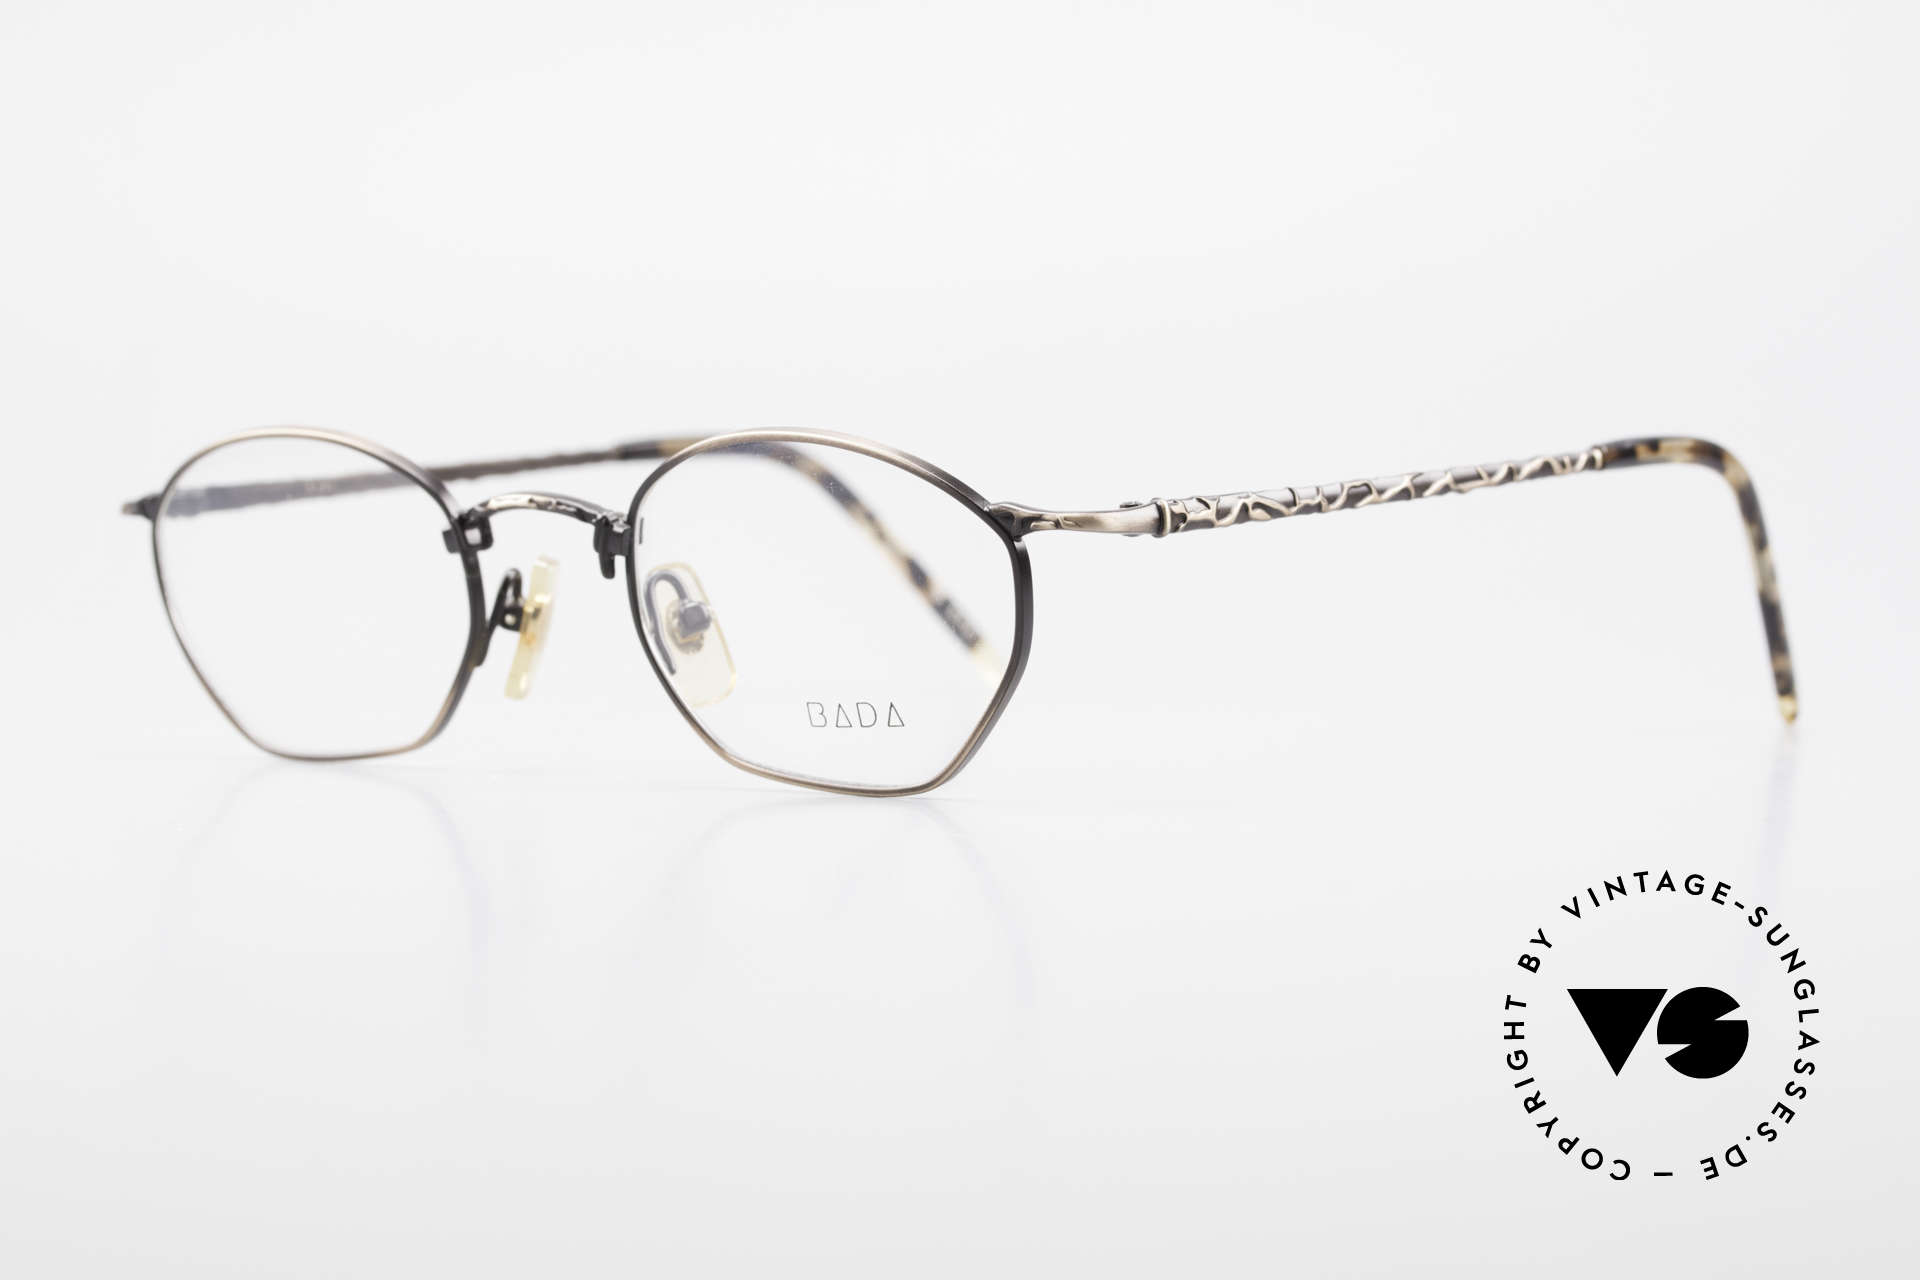 Bada BL1353 Oliver Peoples Eyevan Style, made in the same factory like Oliver Peoples & Eyevan, Made for Men and Women